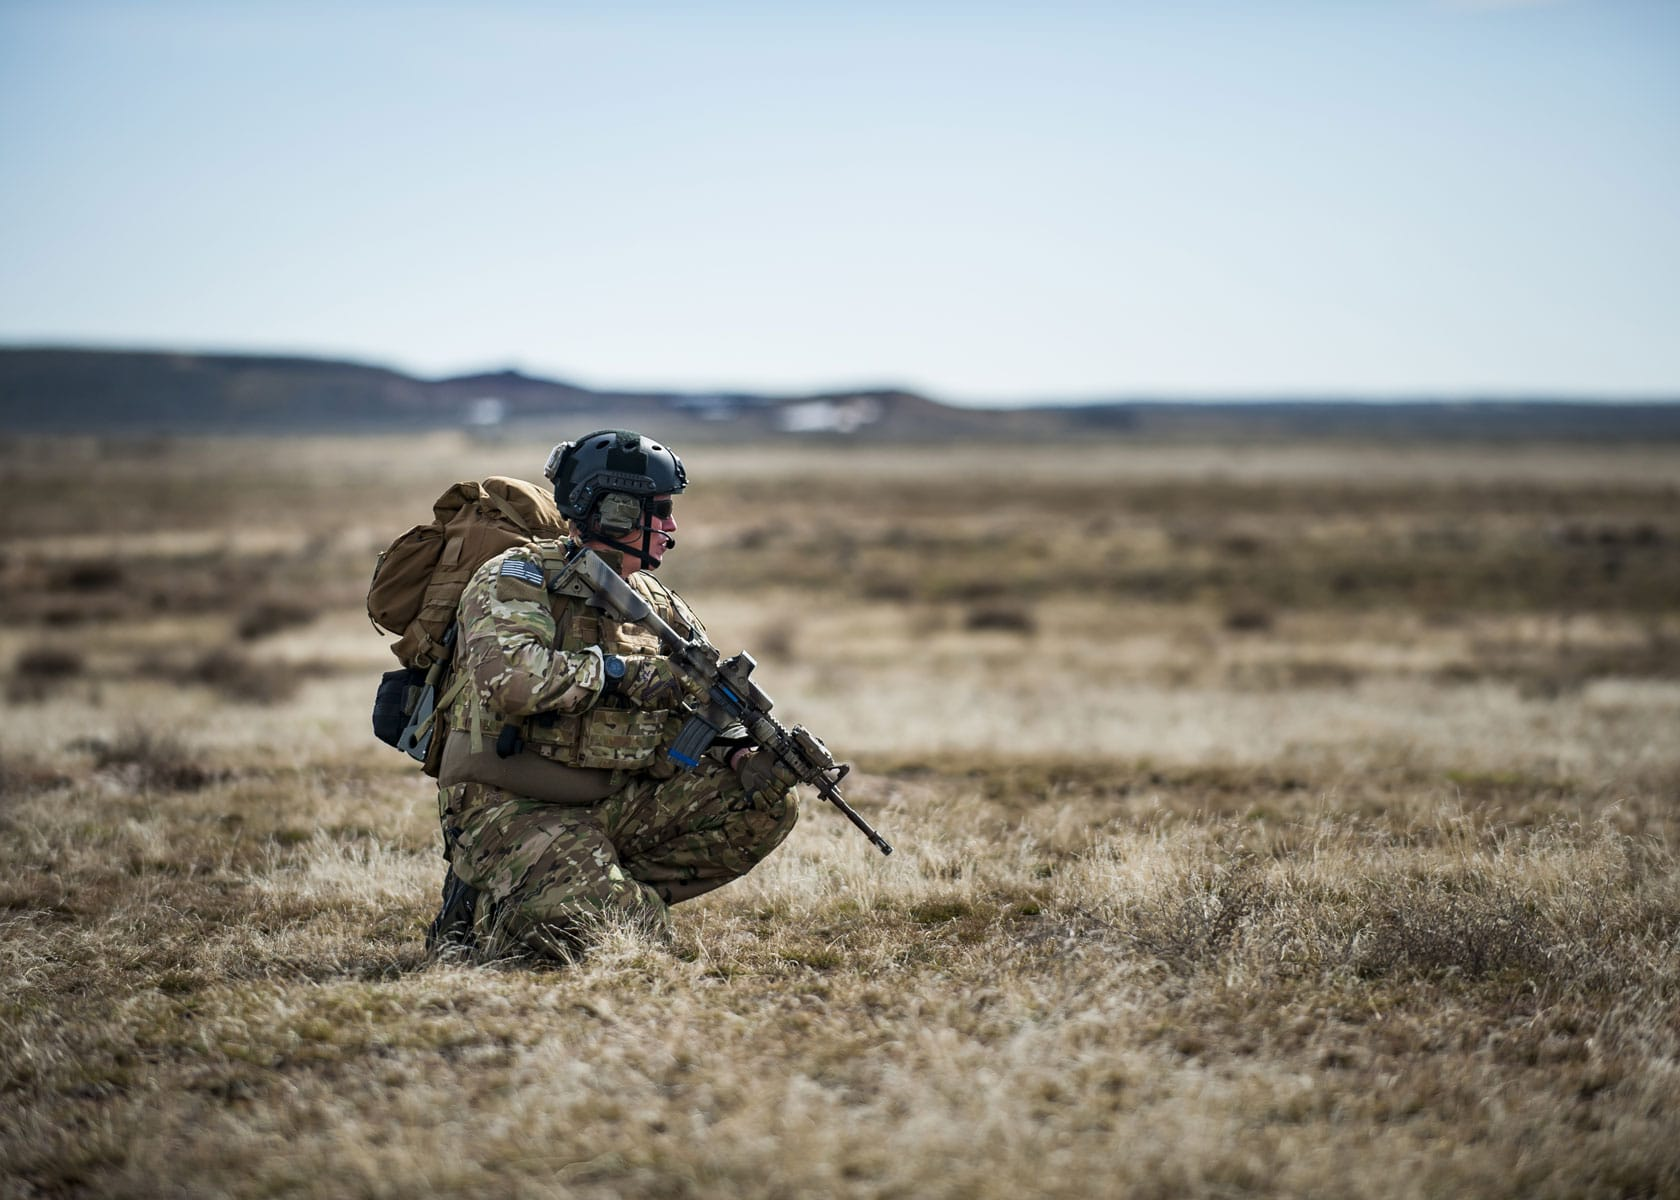 U.S. Air Force Chief Master Sgt. Mike Ziegler, 308th chief enlisted manager and pararescueman, watches his sector of fire.